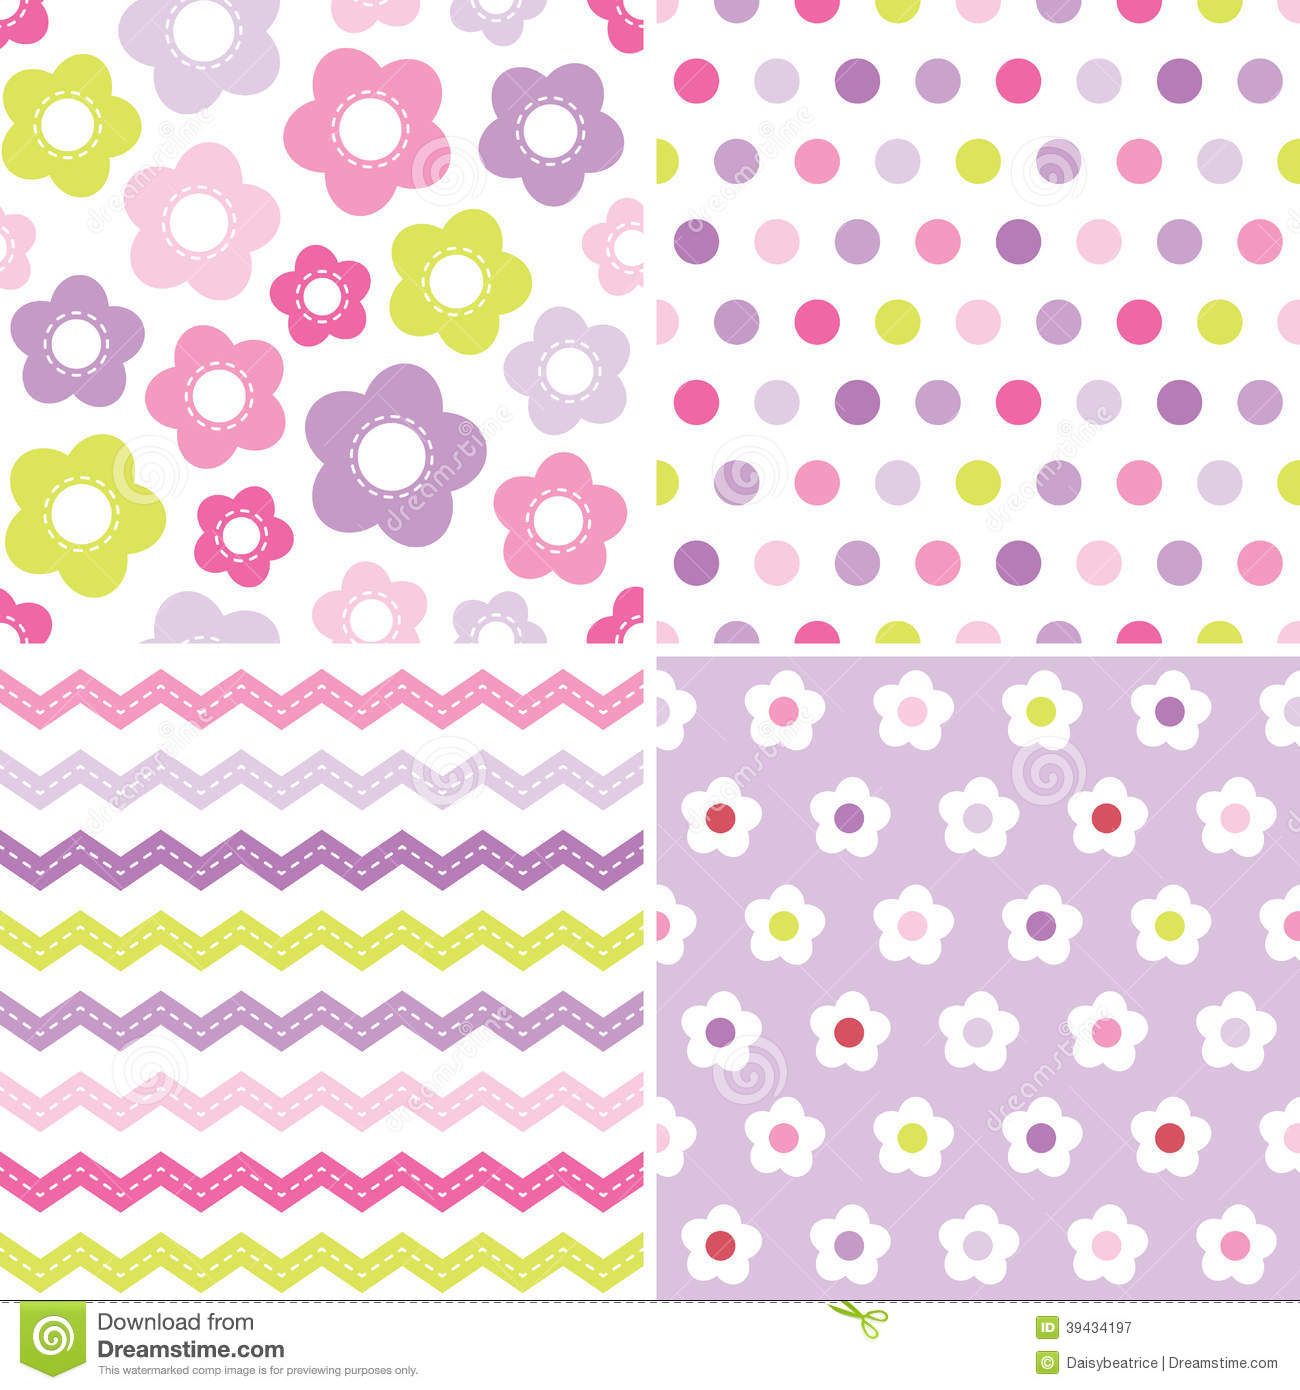 Cute seamless pink and purple background patterns stock vector royalty free stock photo negle Image collections